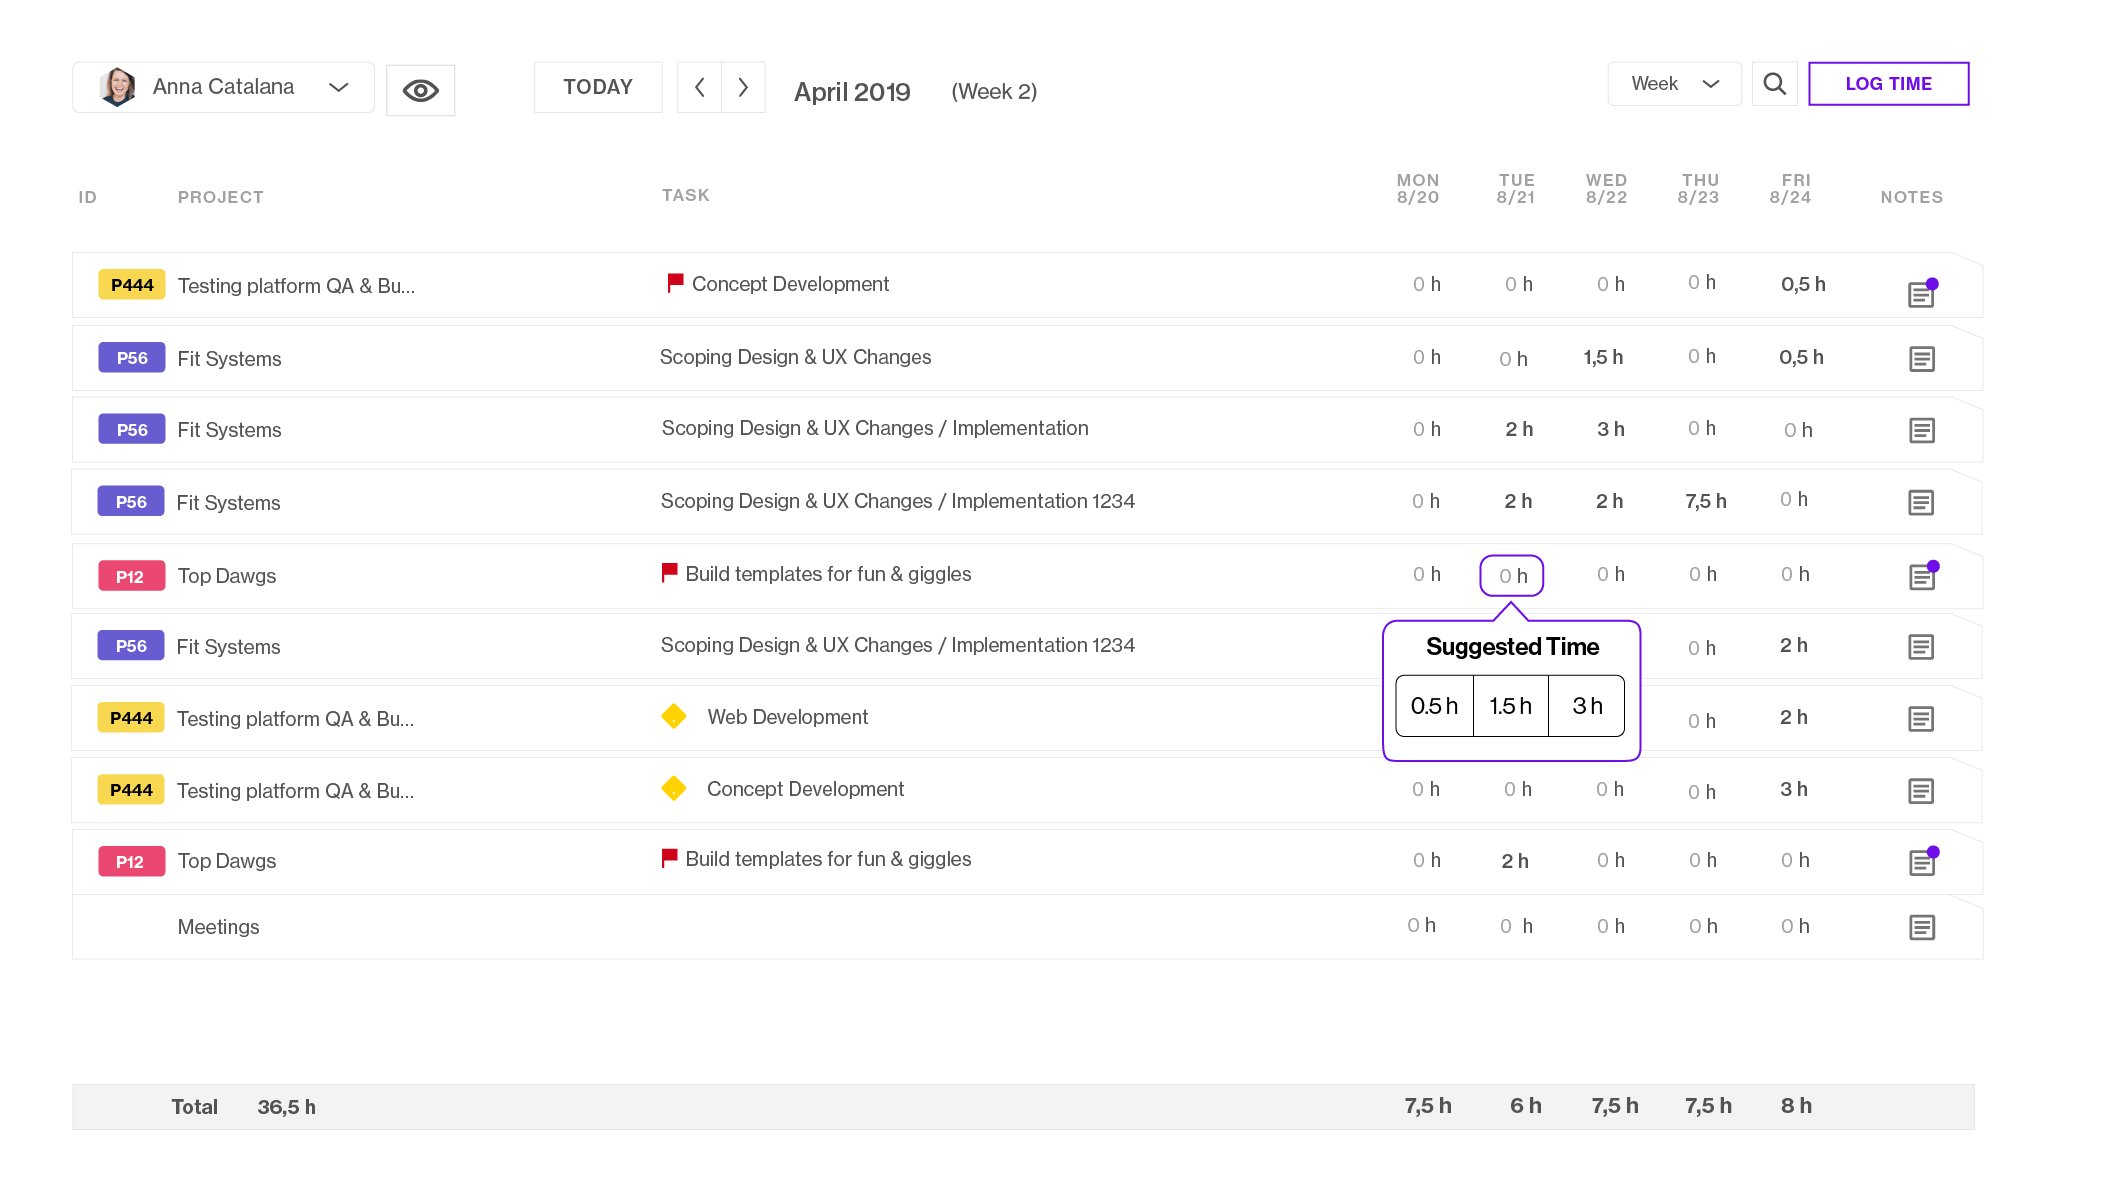 Register time with ease. Based on the tasks you've been working on and are assigned to, the AI-based suggestions help you register time with ease.